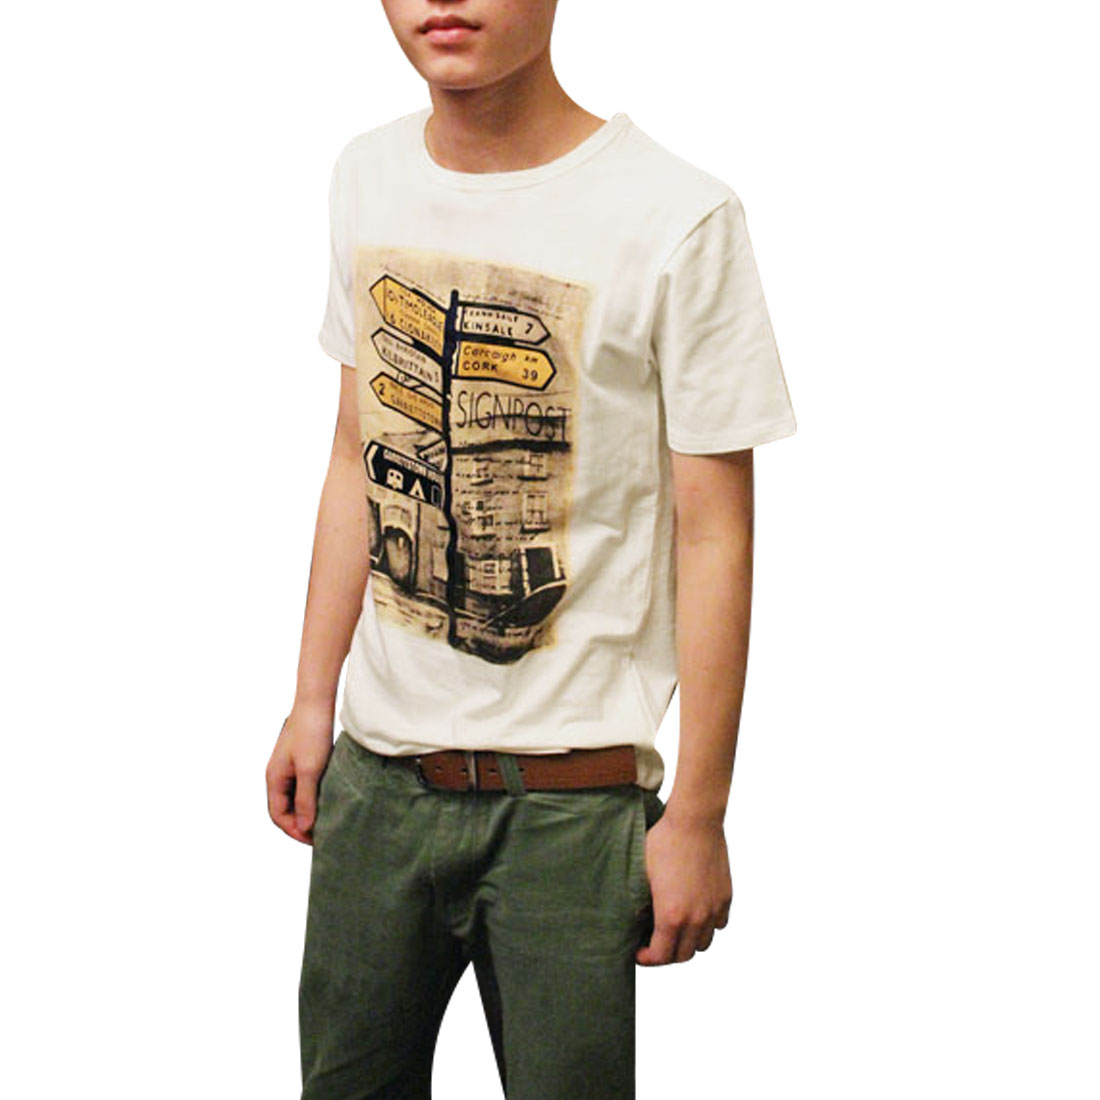 Letters Print Pullover Summer Casual T-Shirt Blouse White M for Men